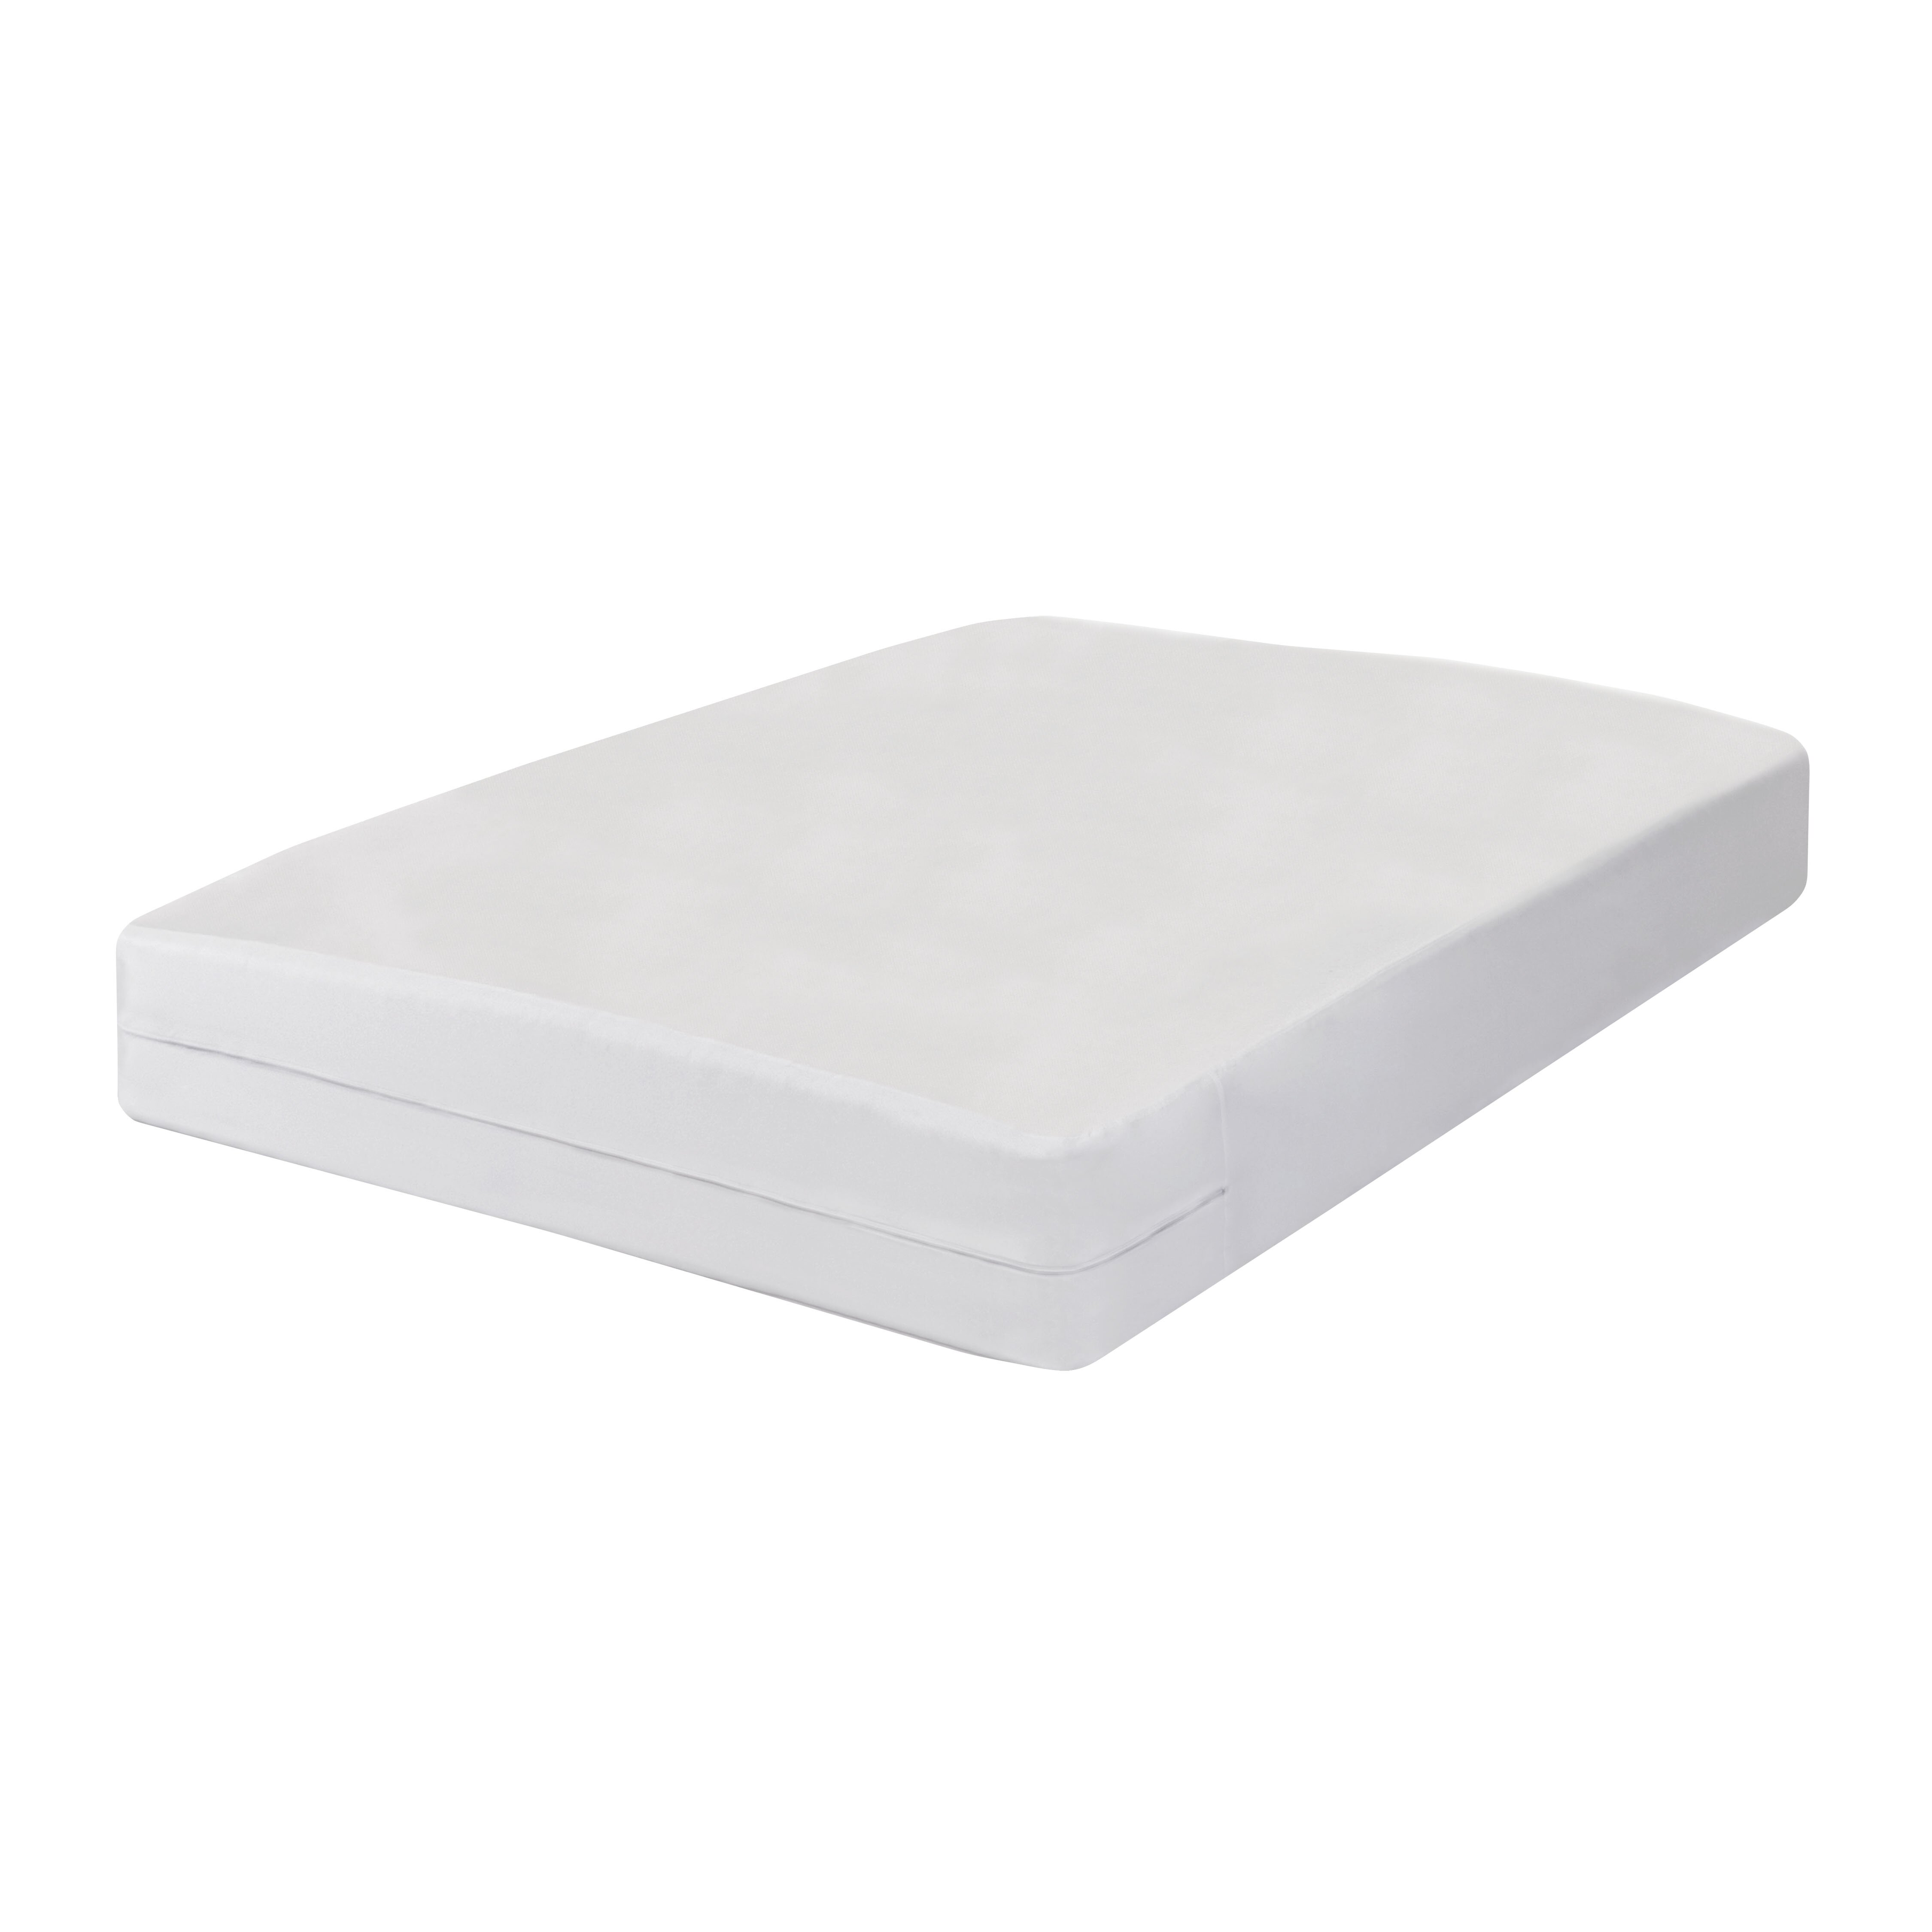 Fresh ideas all in one bed bug blocker hypoallergenic for Bed bug and waterproof mattress protector